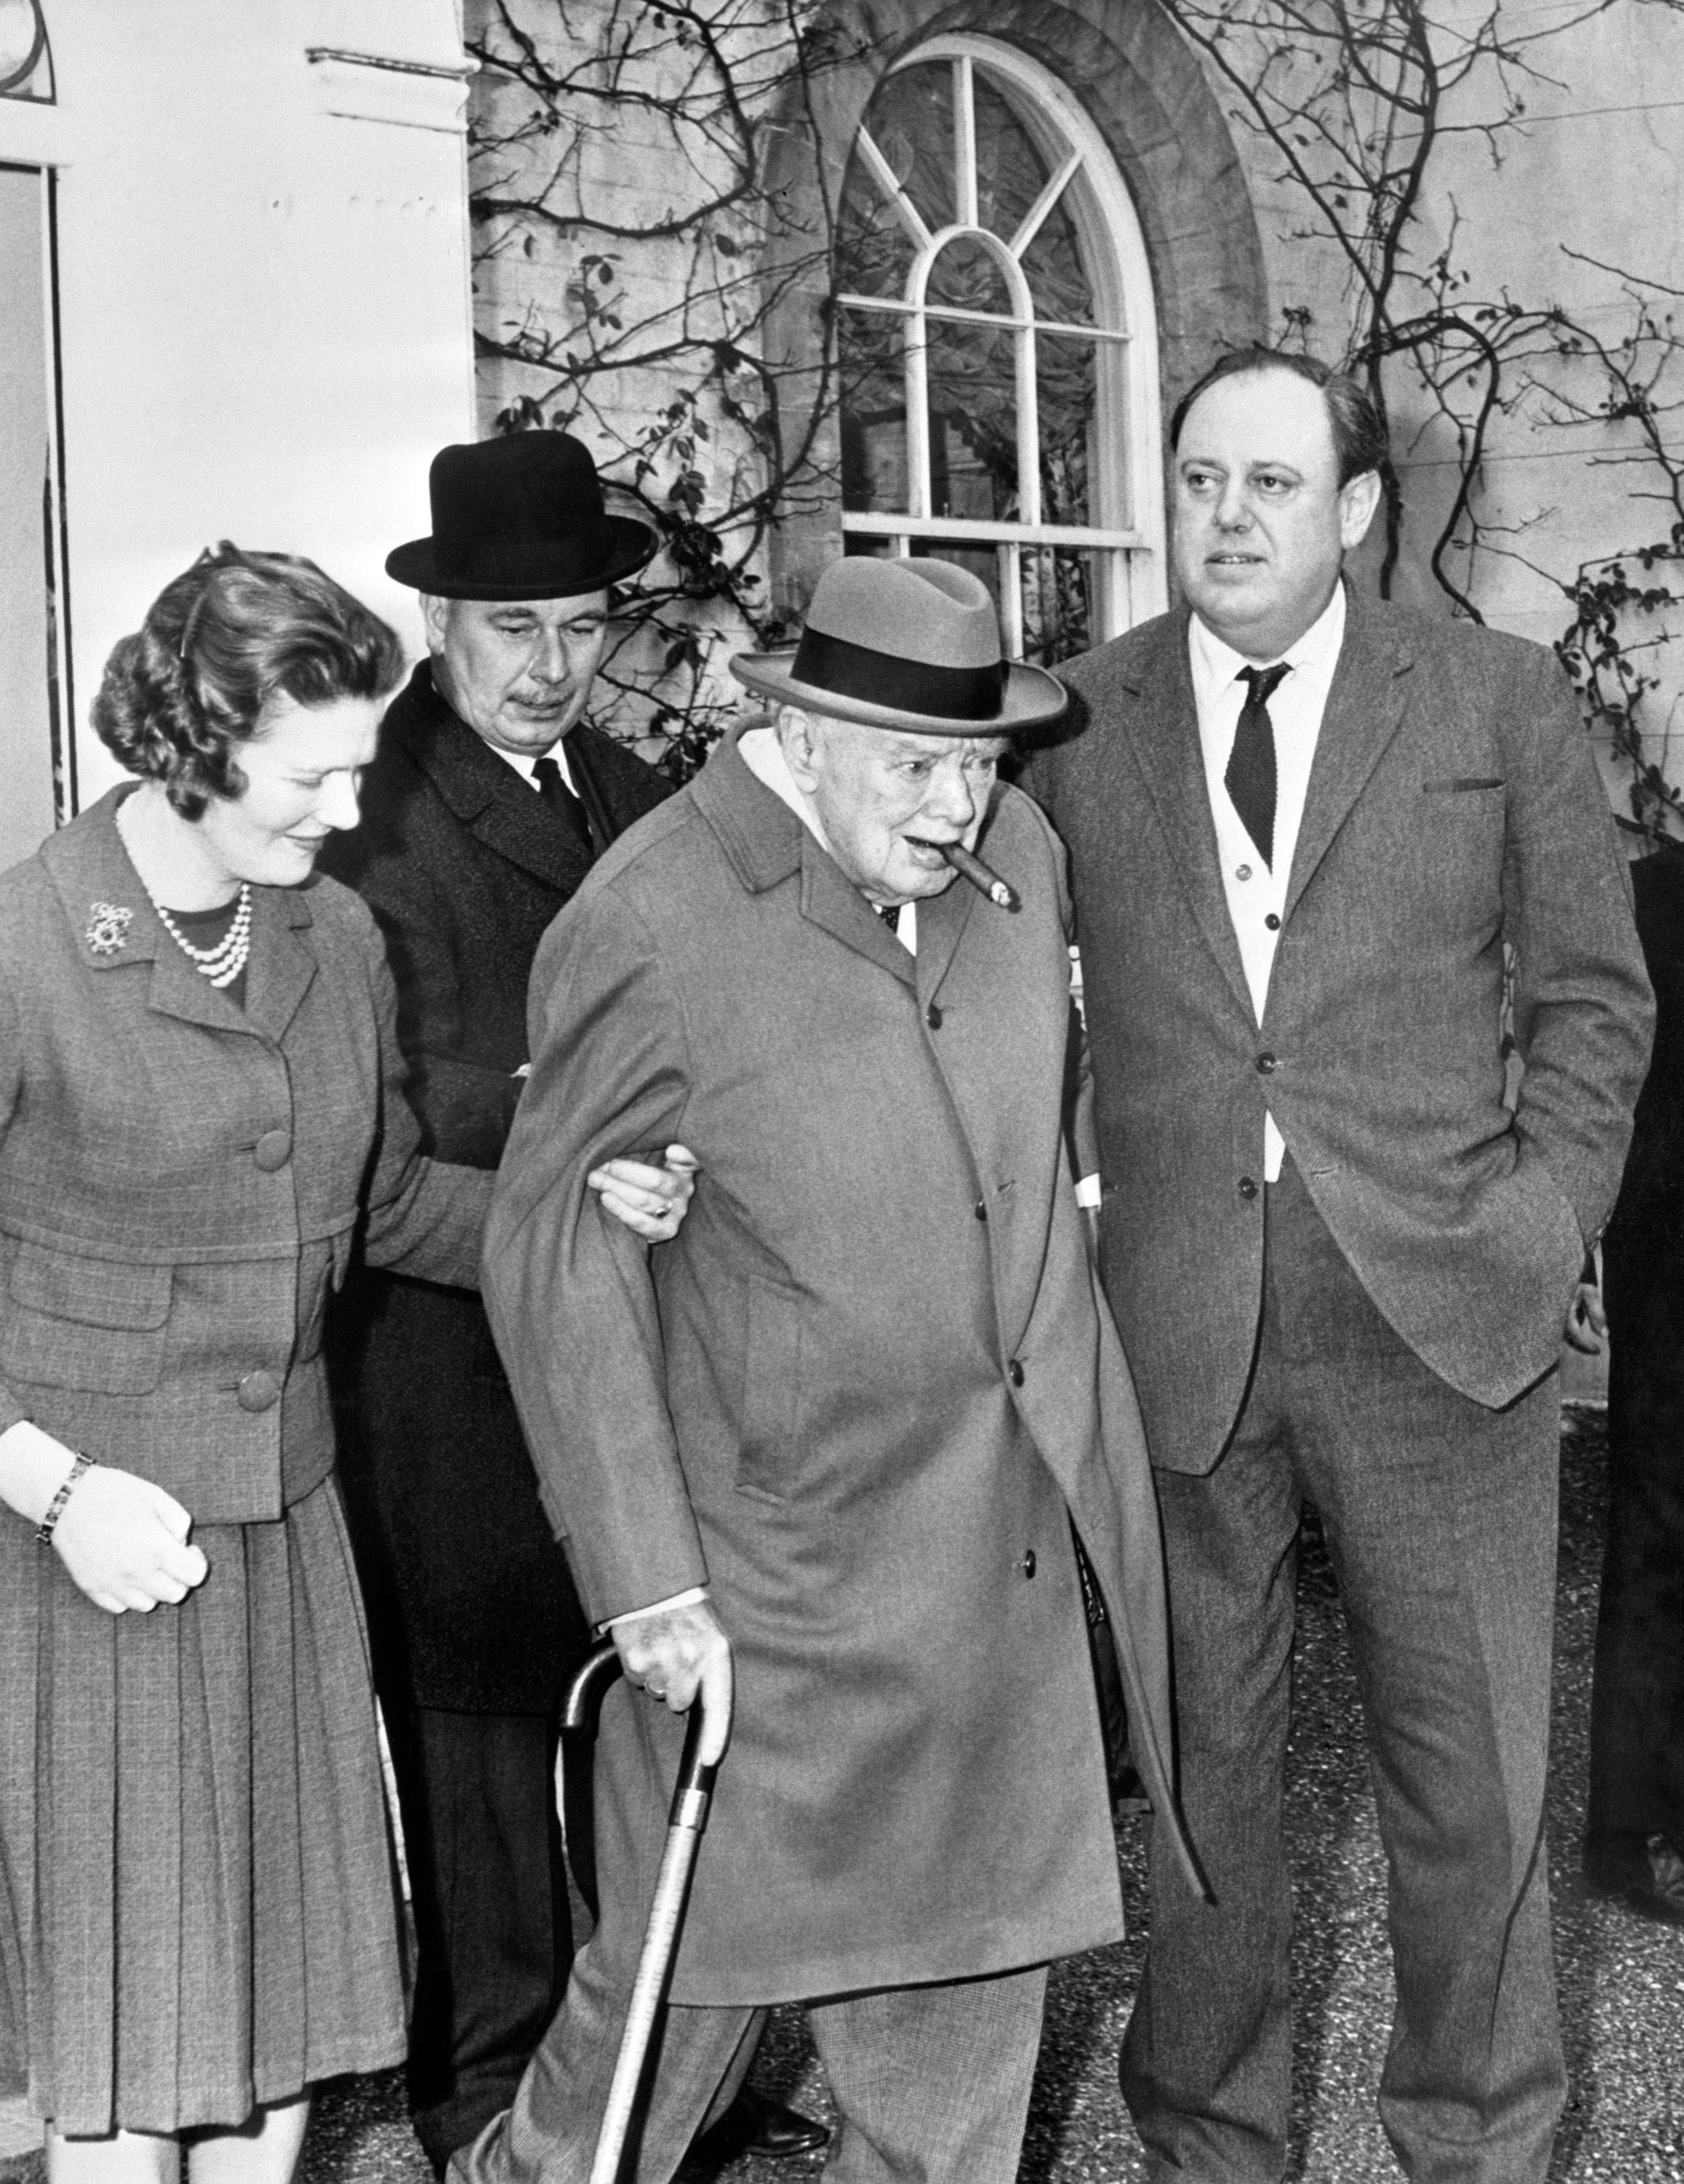 Politics - Sir Winston Churchill with Daughter - Hamsell Manor